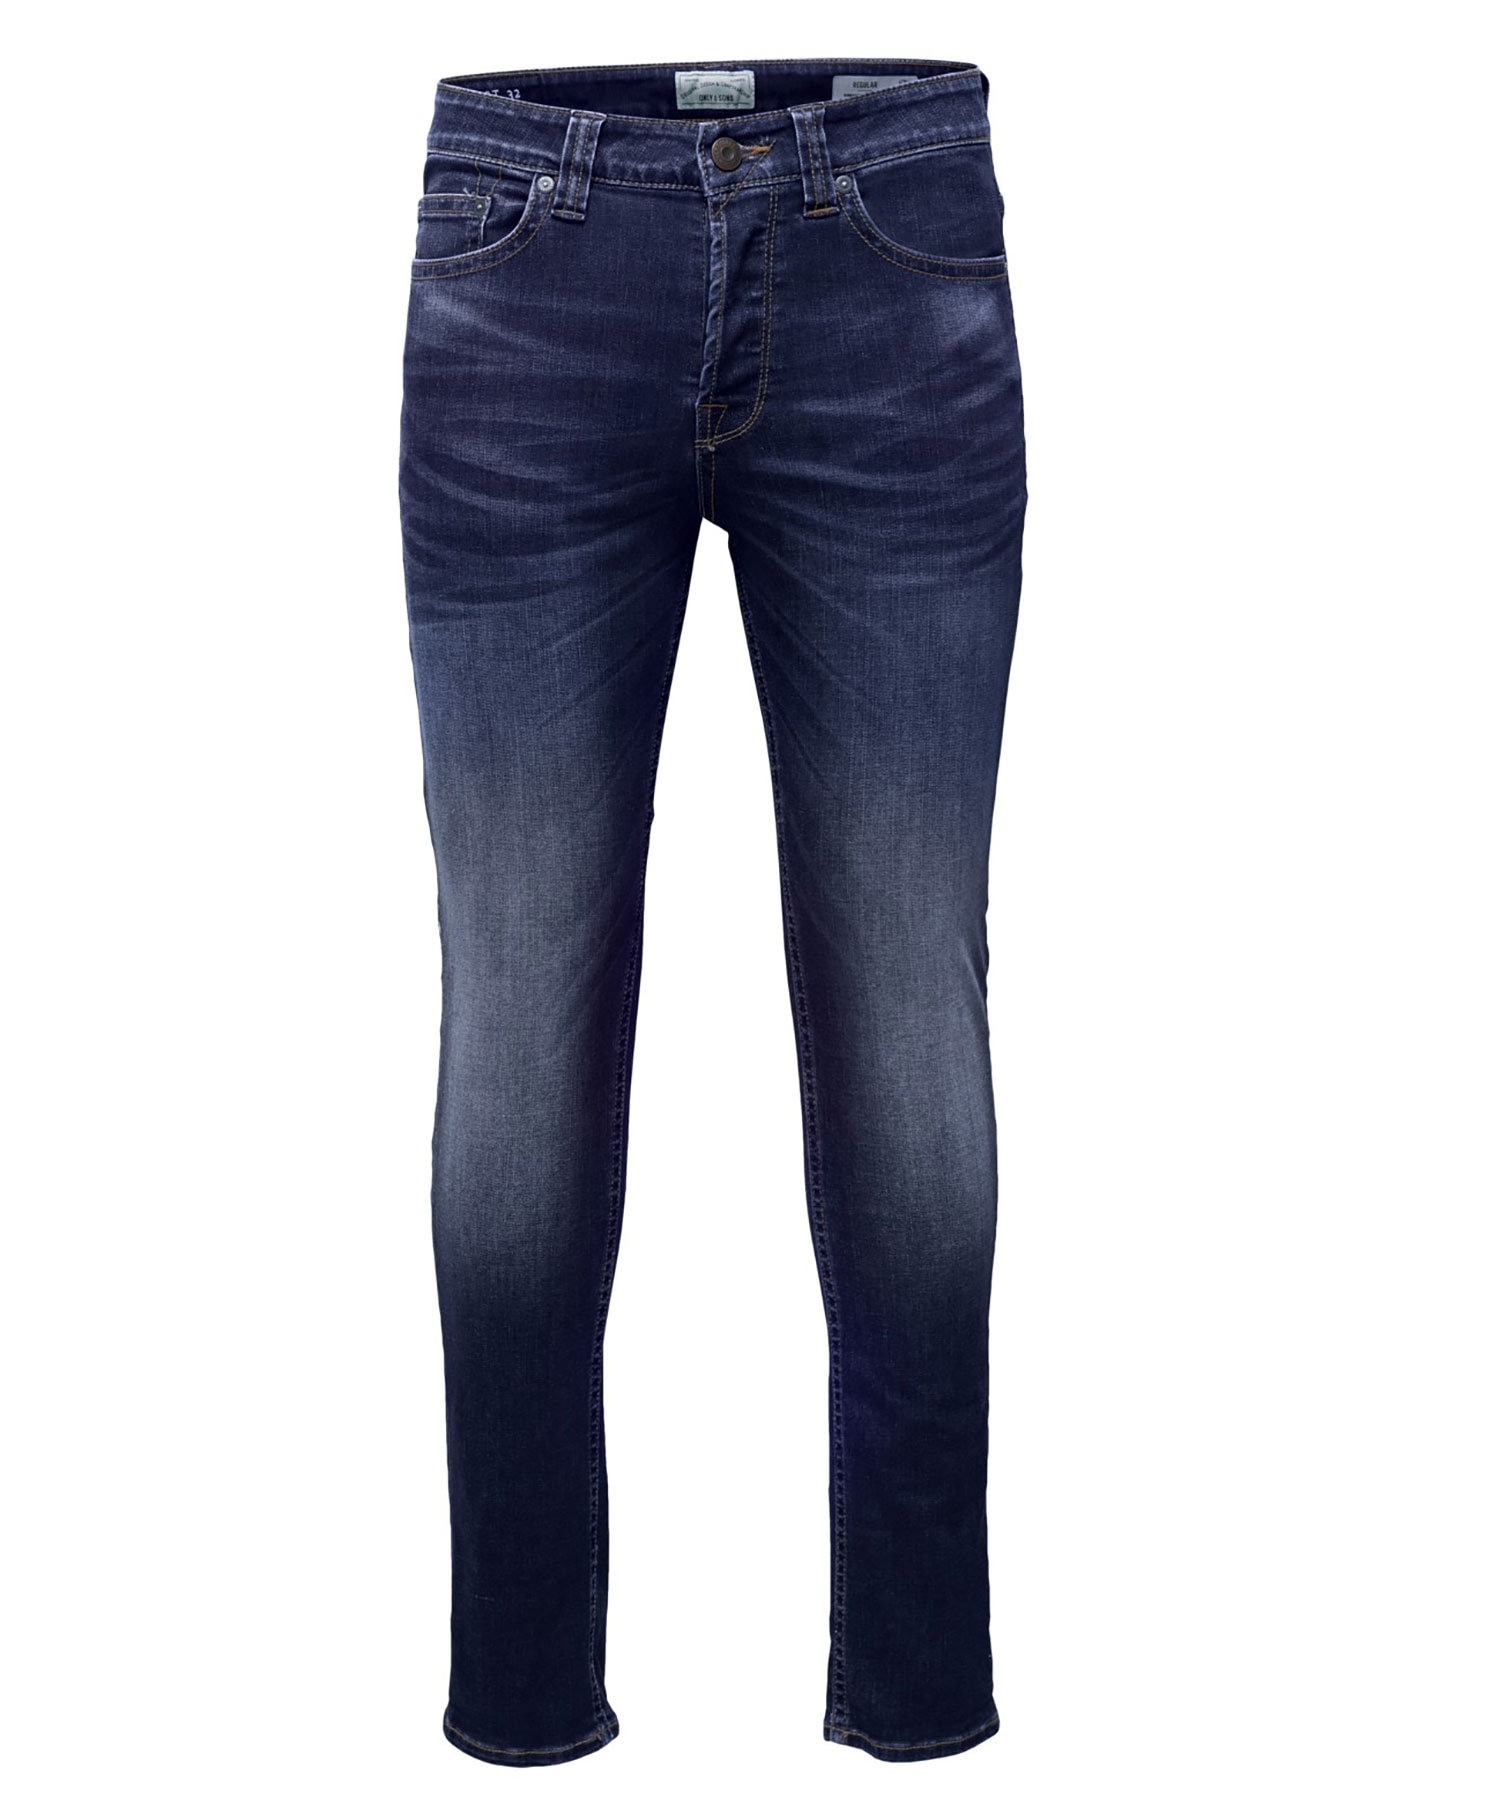 Only Weft jeans